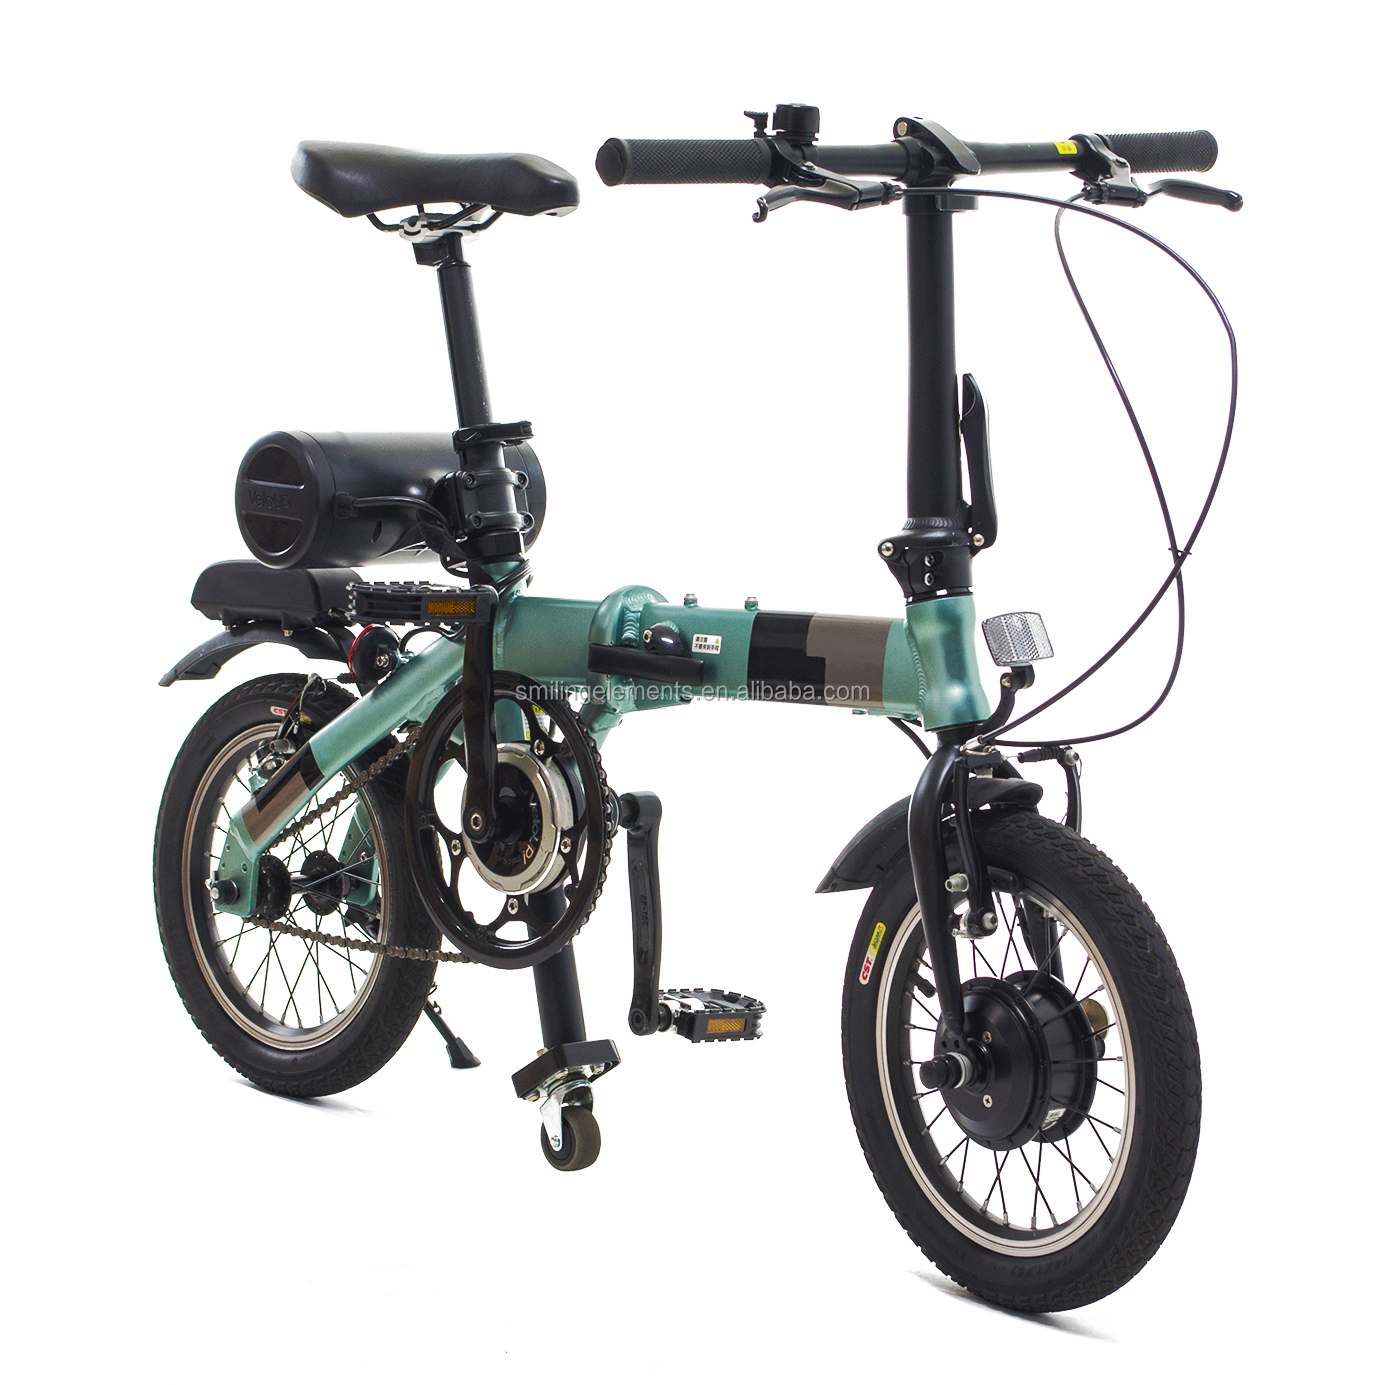 Best quality OEM/ODM 180W Mini 14 Inch tire Folding e-bike/ Electric bicycle/ ebike city